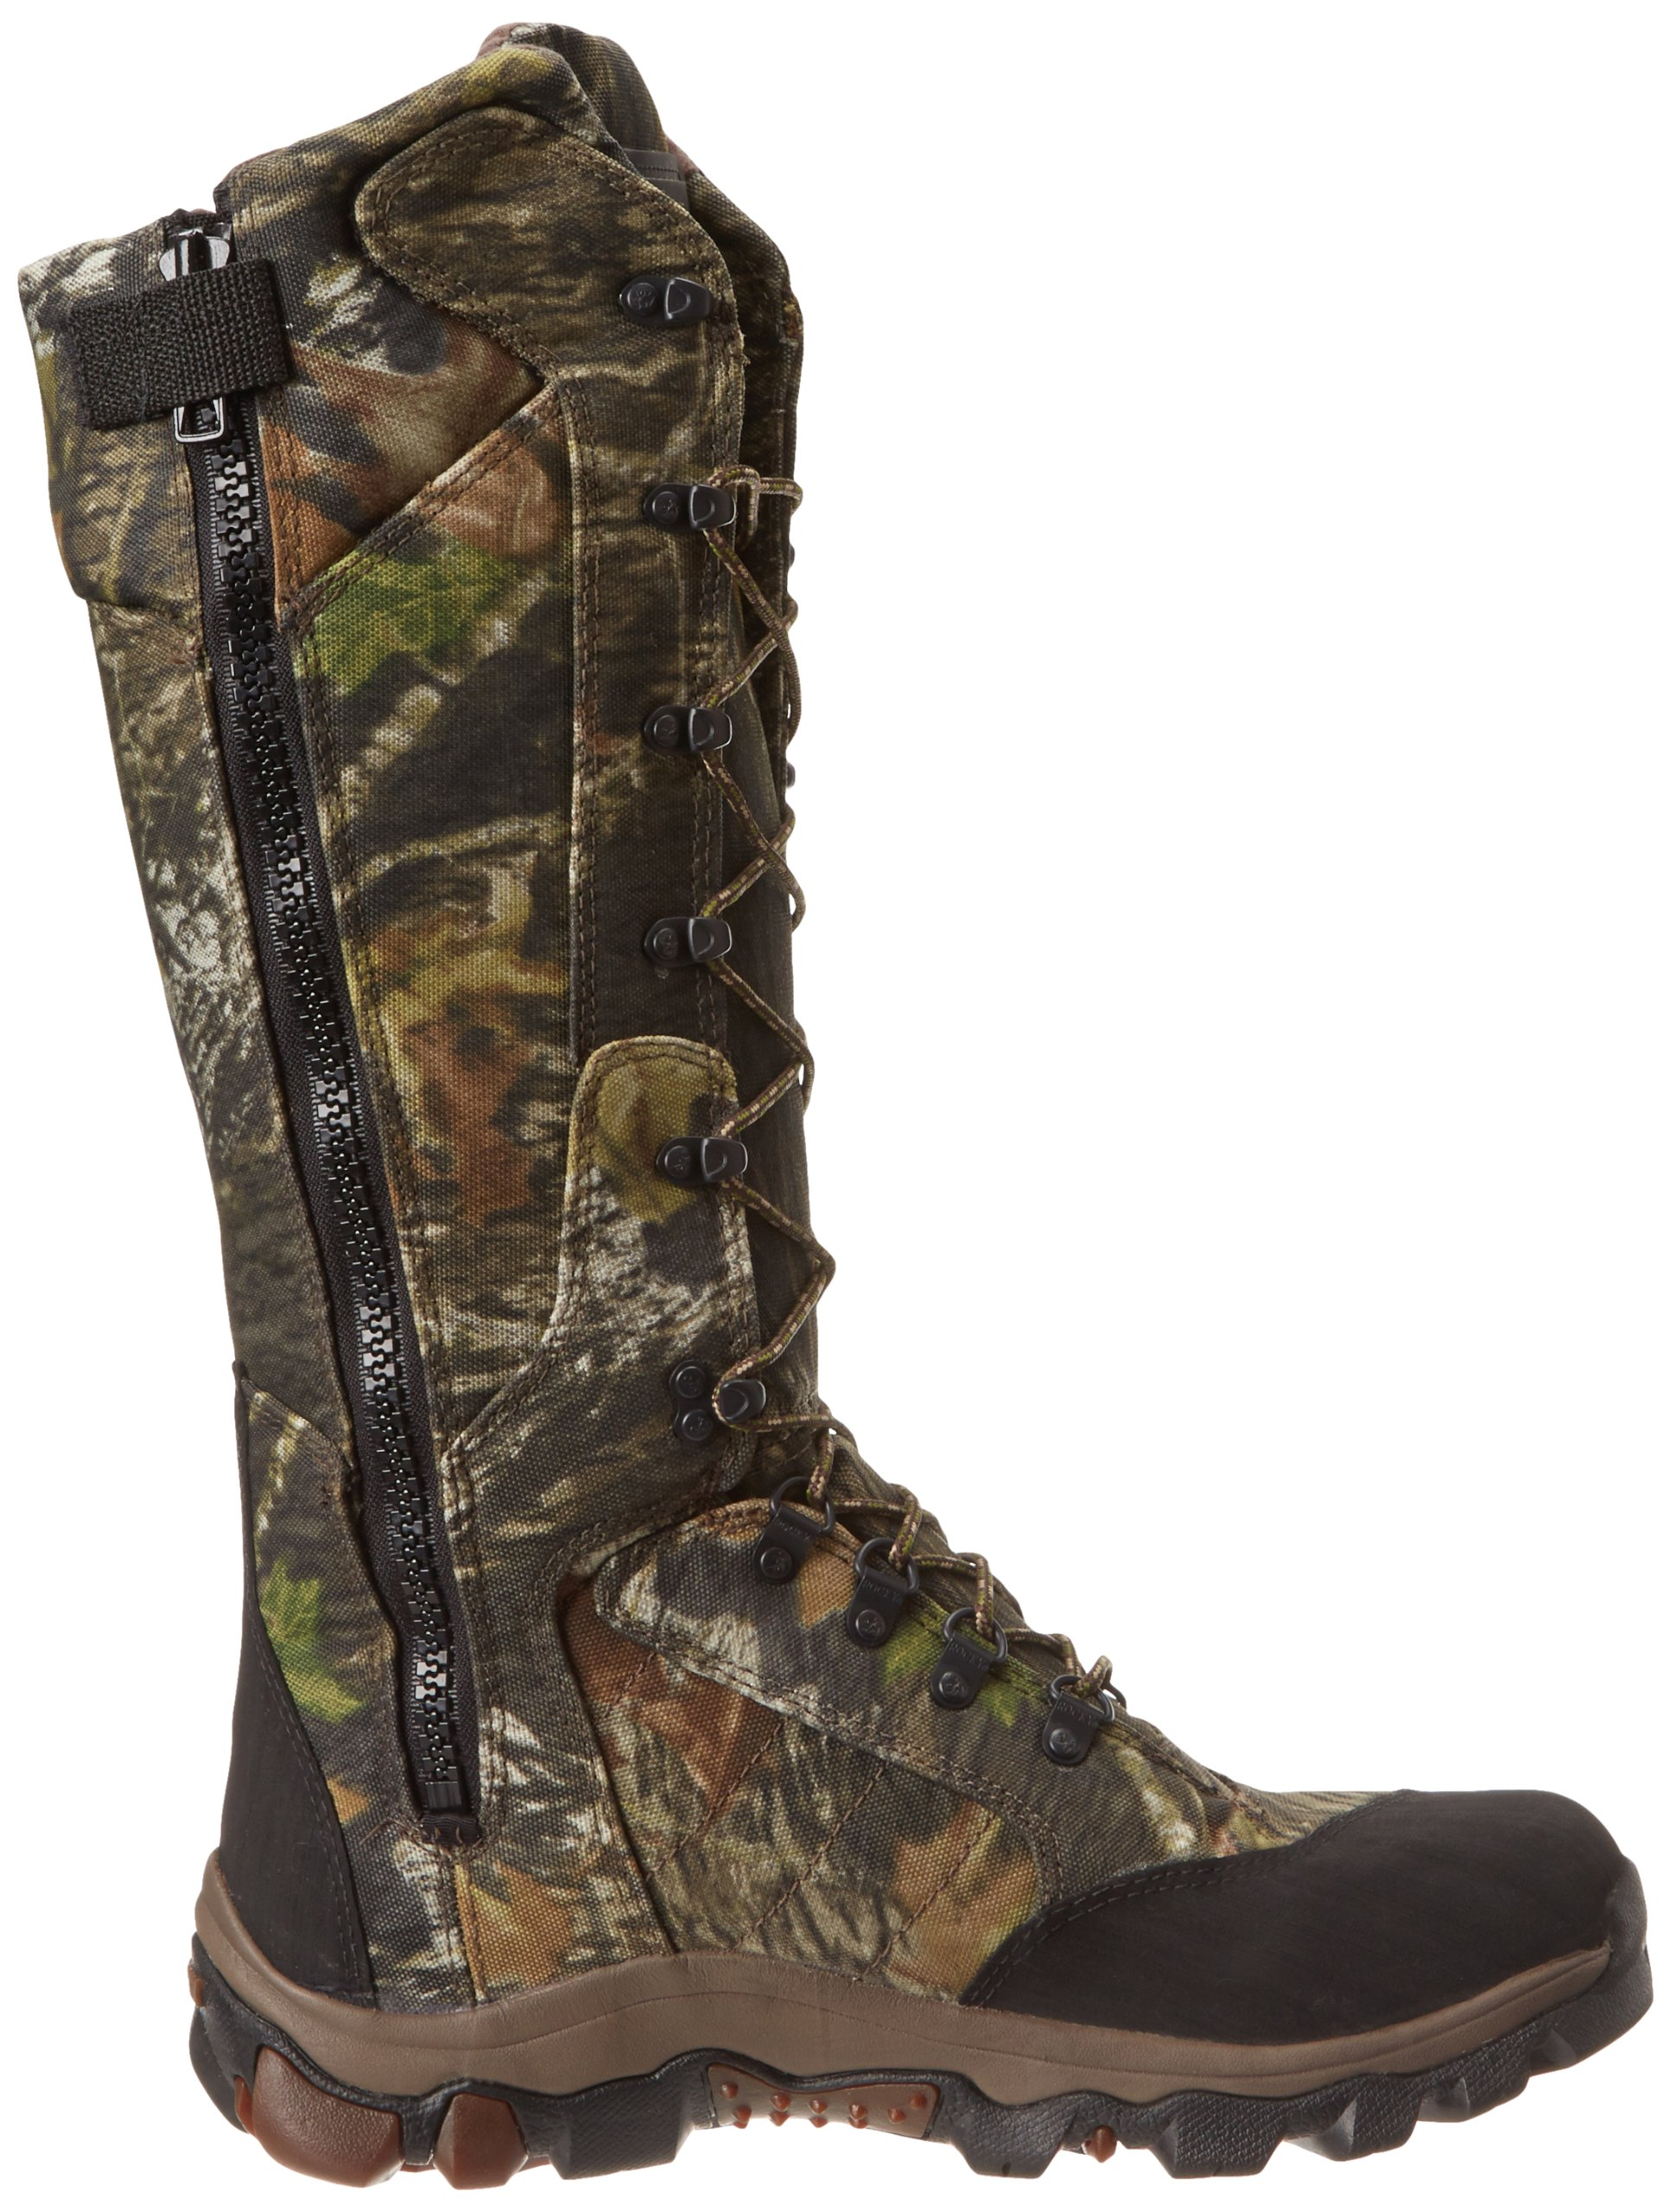 Rocky Men's Lynx Snake Boot Hunting Boot,Mobu,10 M US by Rocky (Image #6)